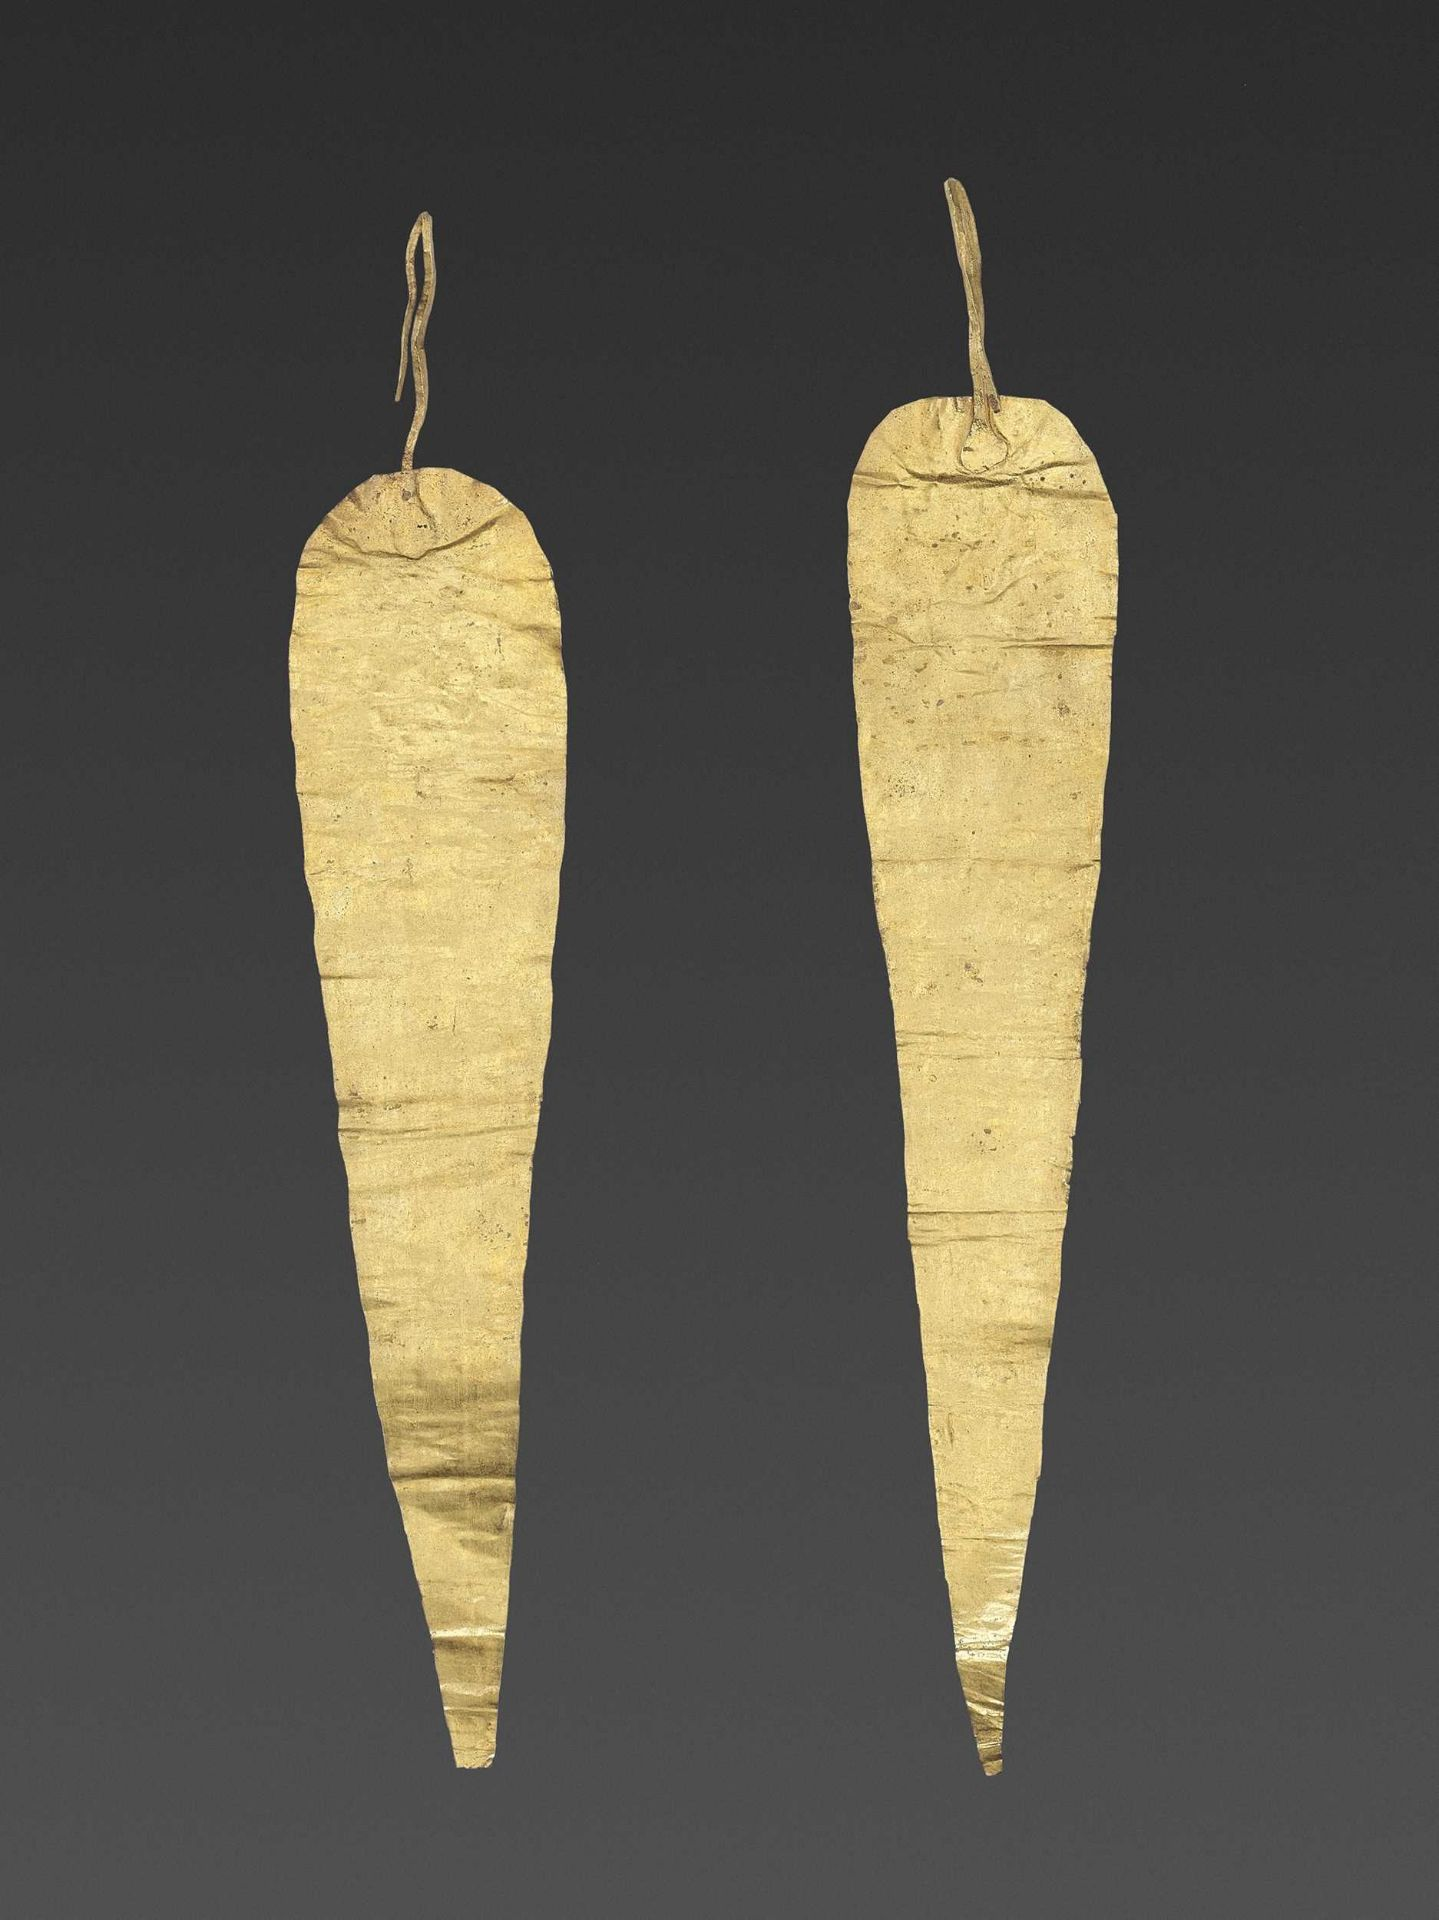 A PAIR OF BACTRIAN GOLD HAIR ORNAMMENTS - Bild 4 aus 4